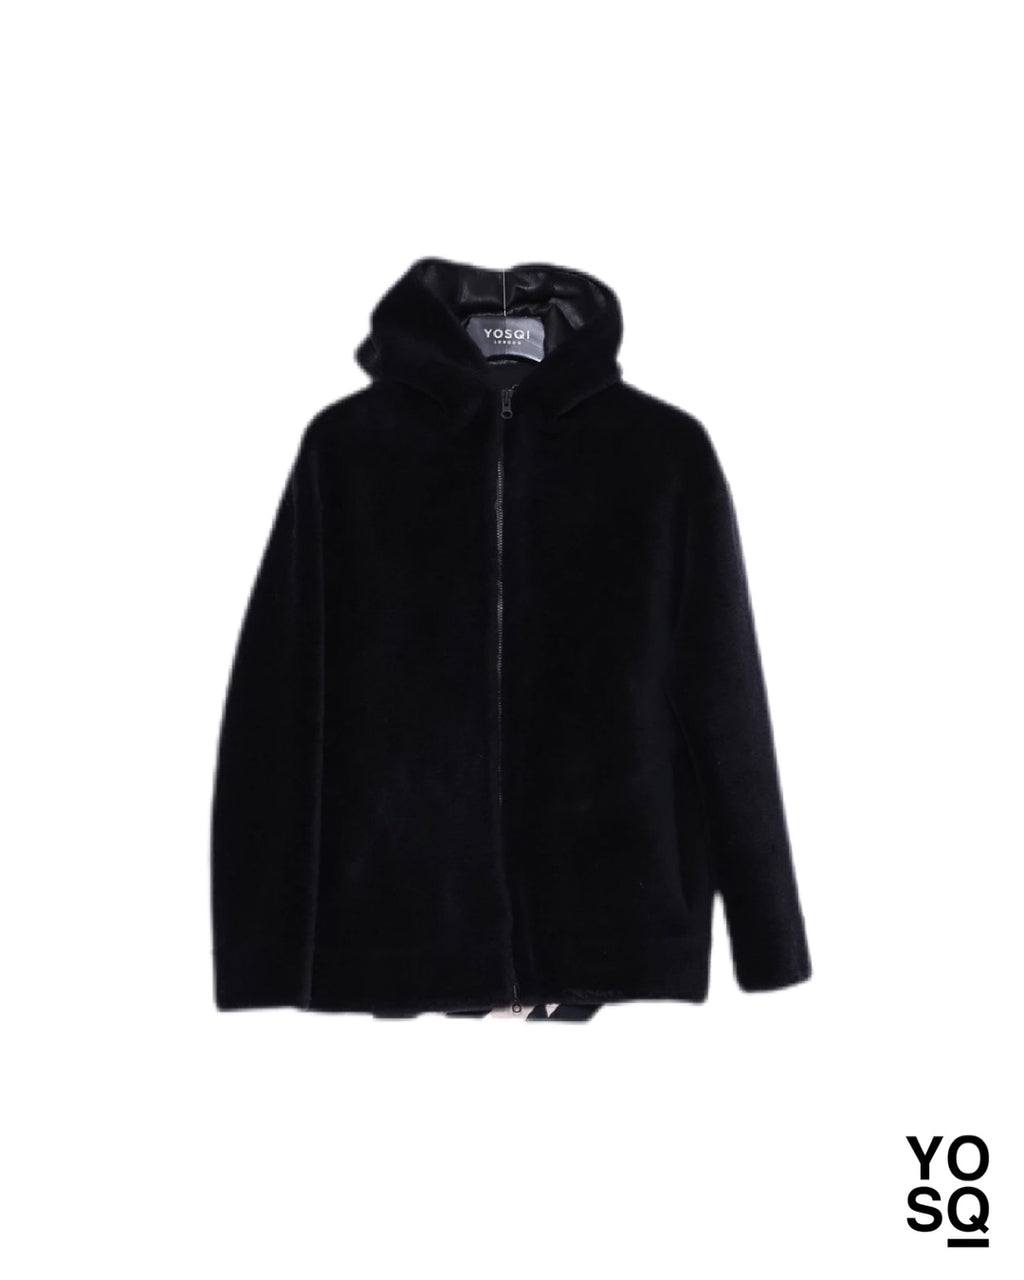 Onyx Cashmere Woolen Shearling